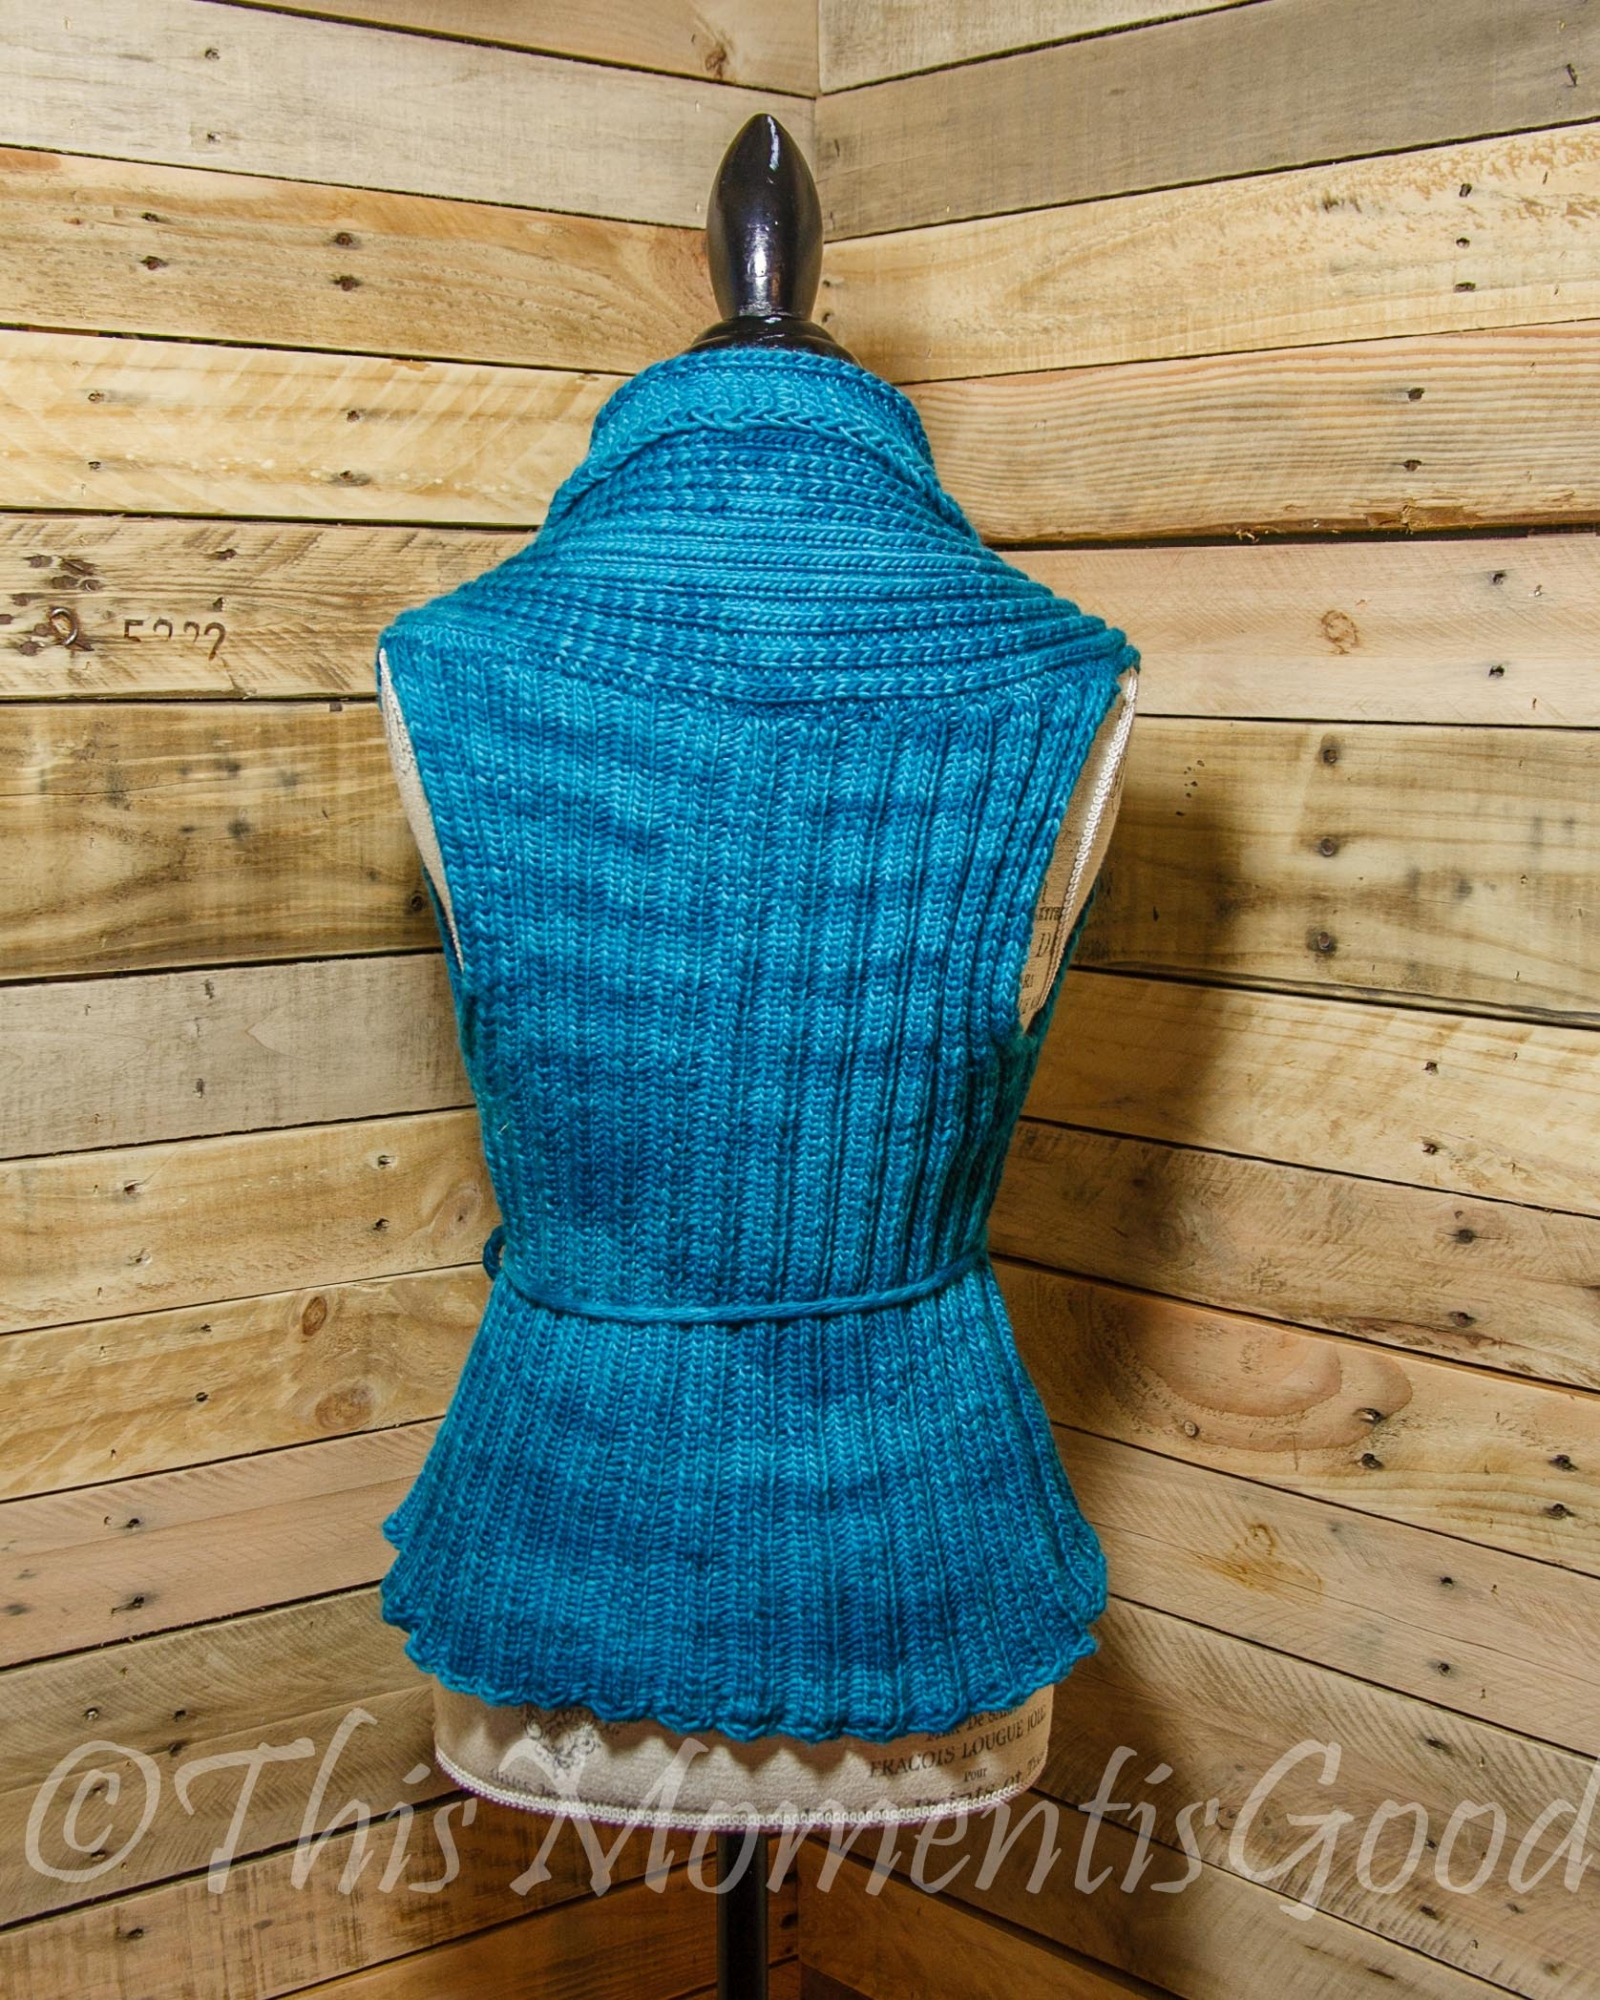 Loom Knitting Patterns For Beginners Pdf : Loom knit vest pattern the everyday ladies